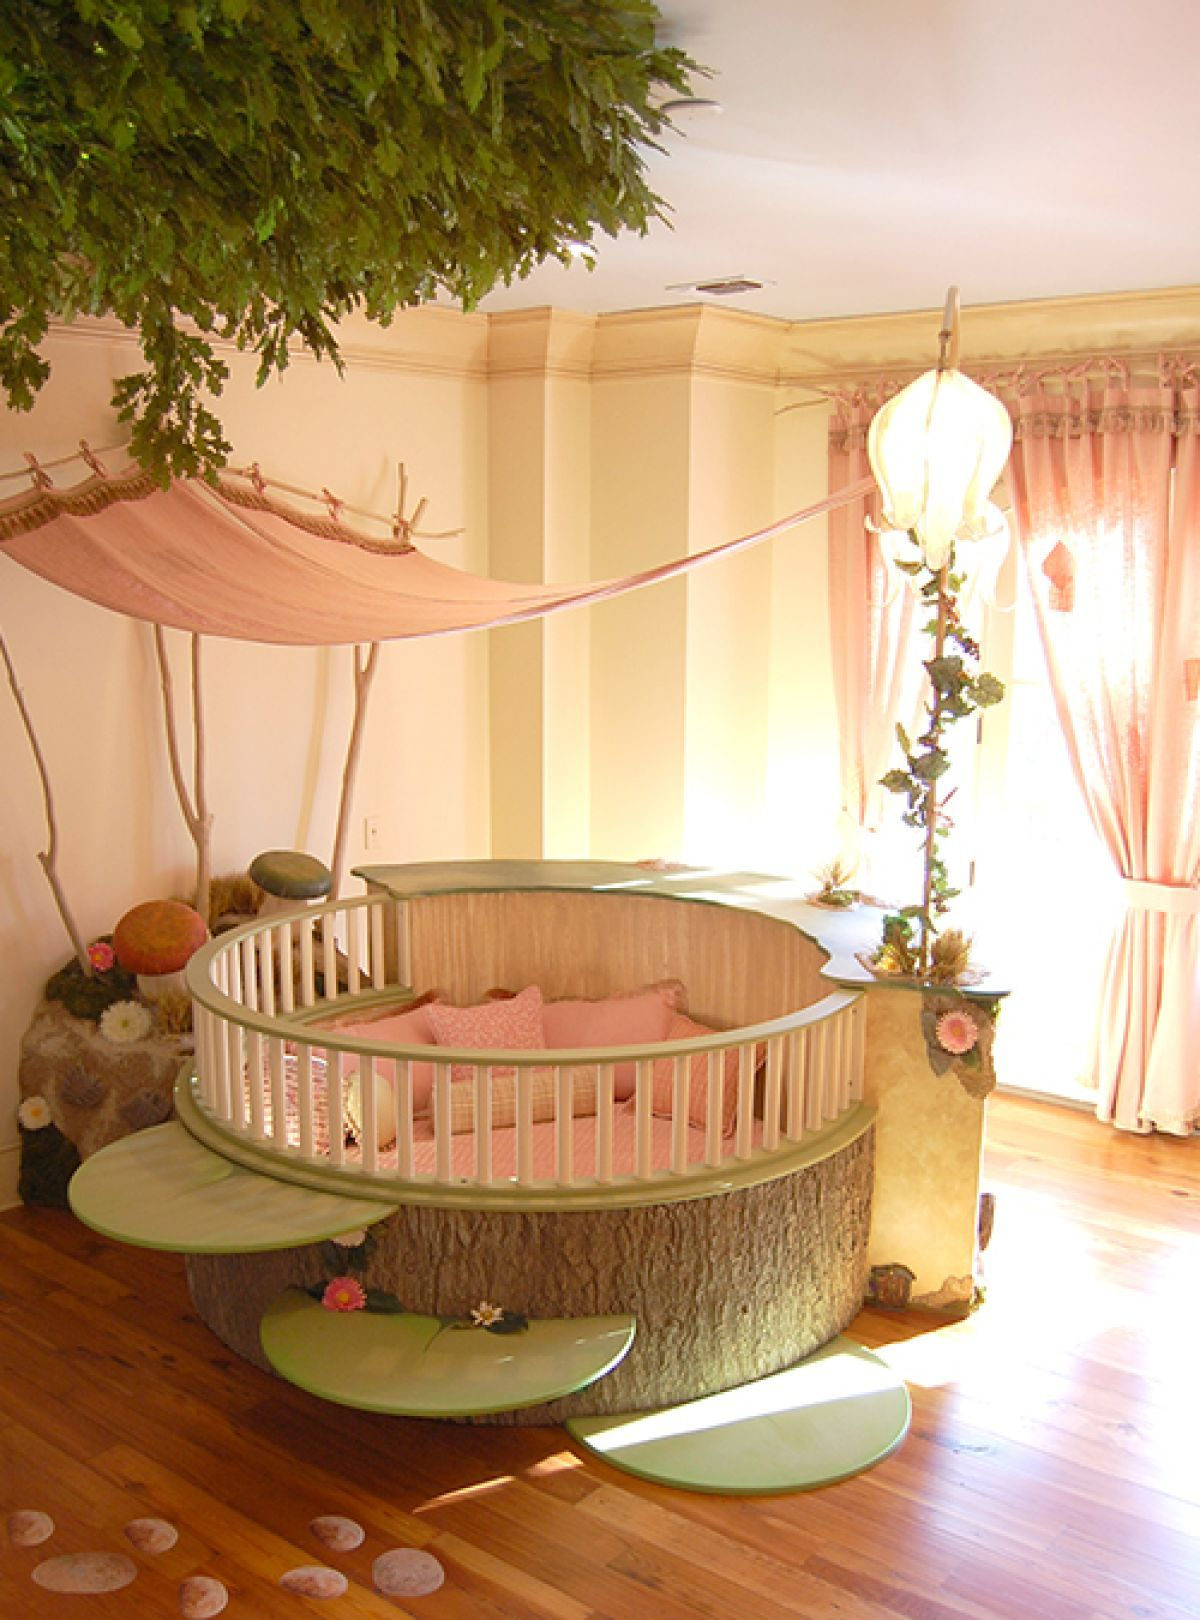 15 disney inspired rooms that will make you want to redo your 46 11 fantastic disney inspired childrens rooms 0 f